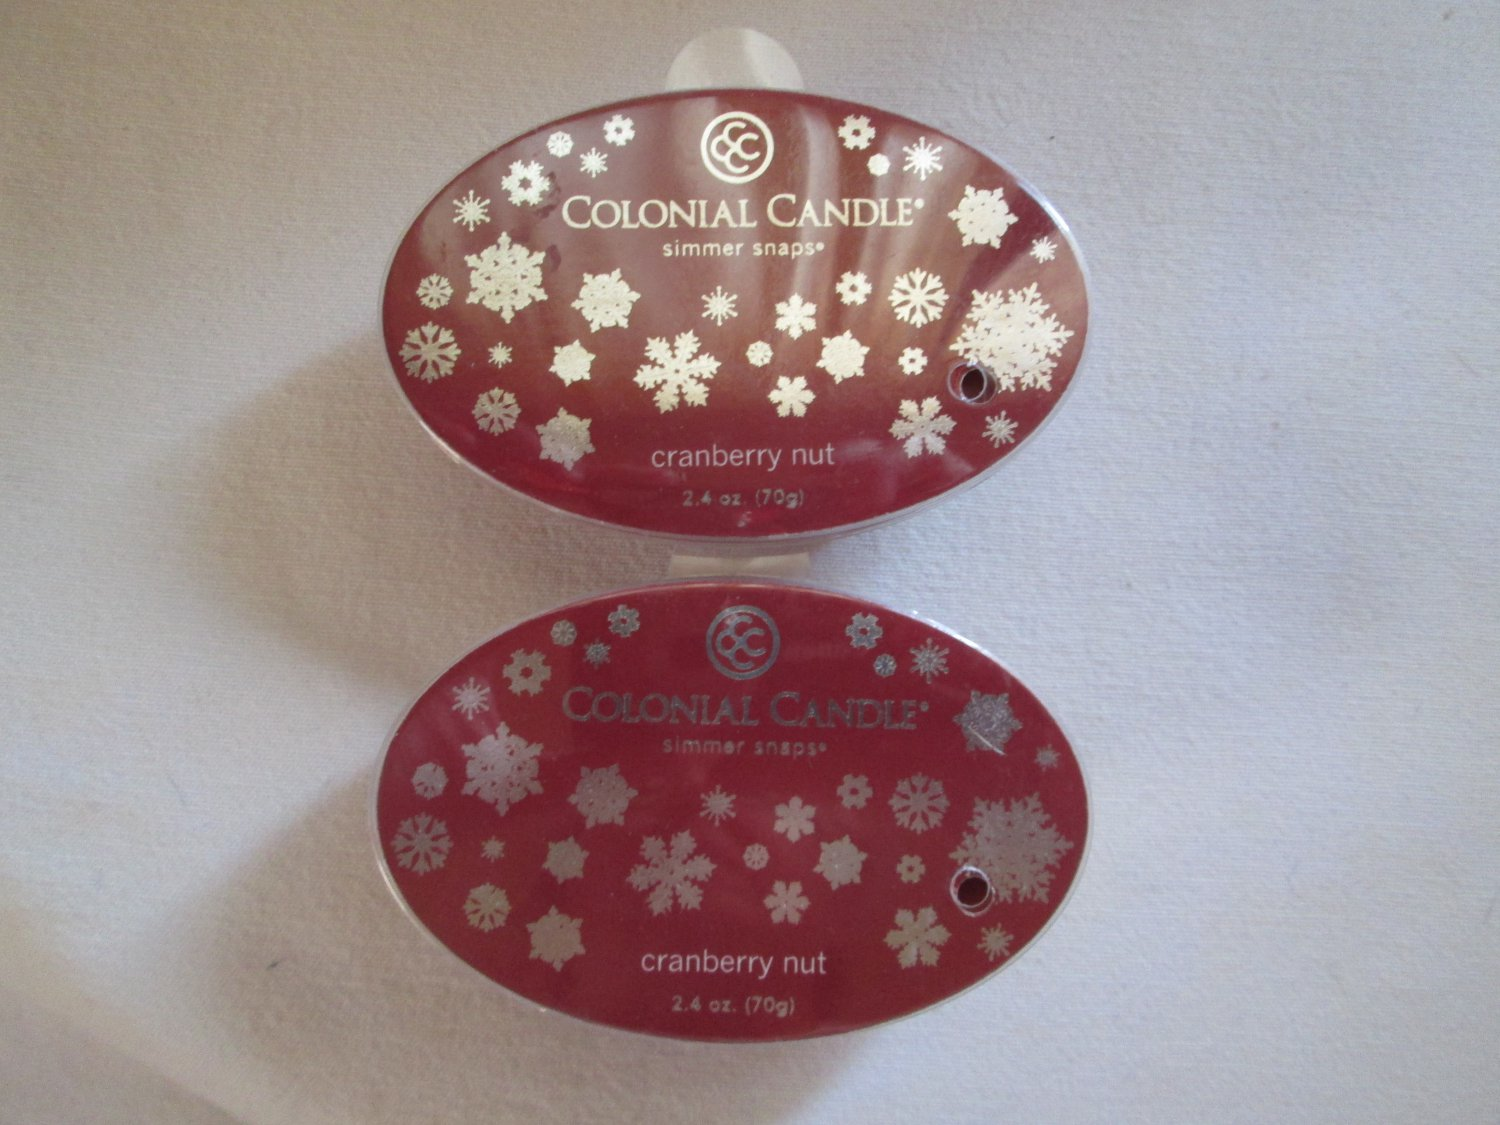 """2 Colonial Candle Simmer Snaps""""CRANBERRY NUT"""" 2.4 oz wax melts/ tarts"""